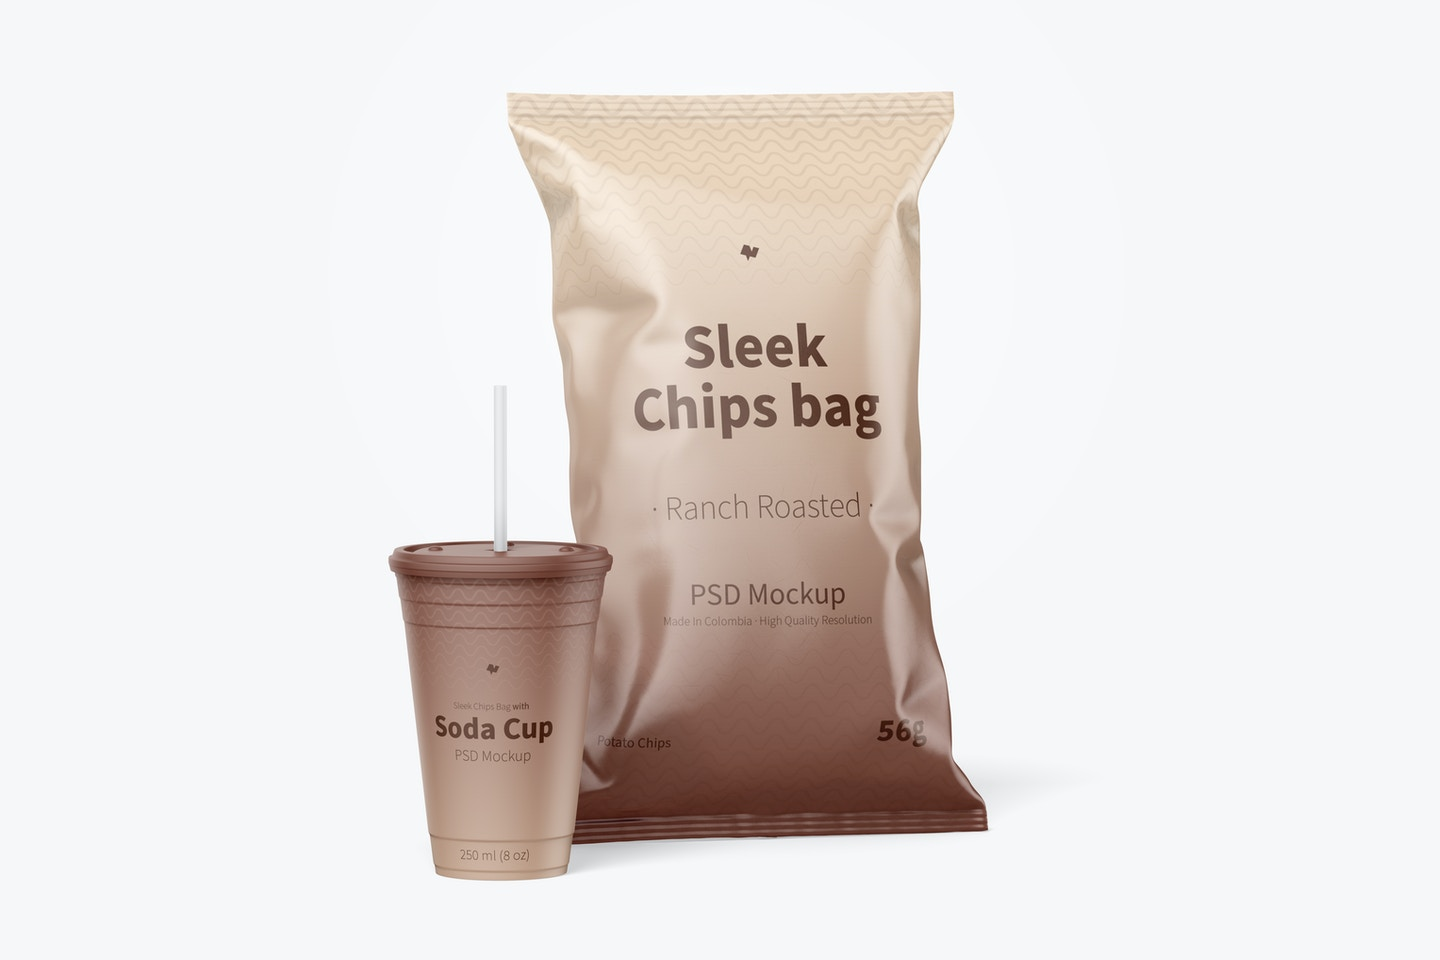 Sleek Chips Bags Mockup with Soda Cup